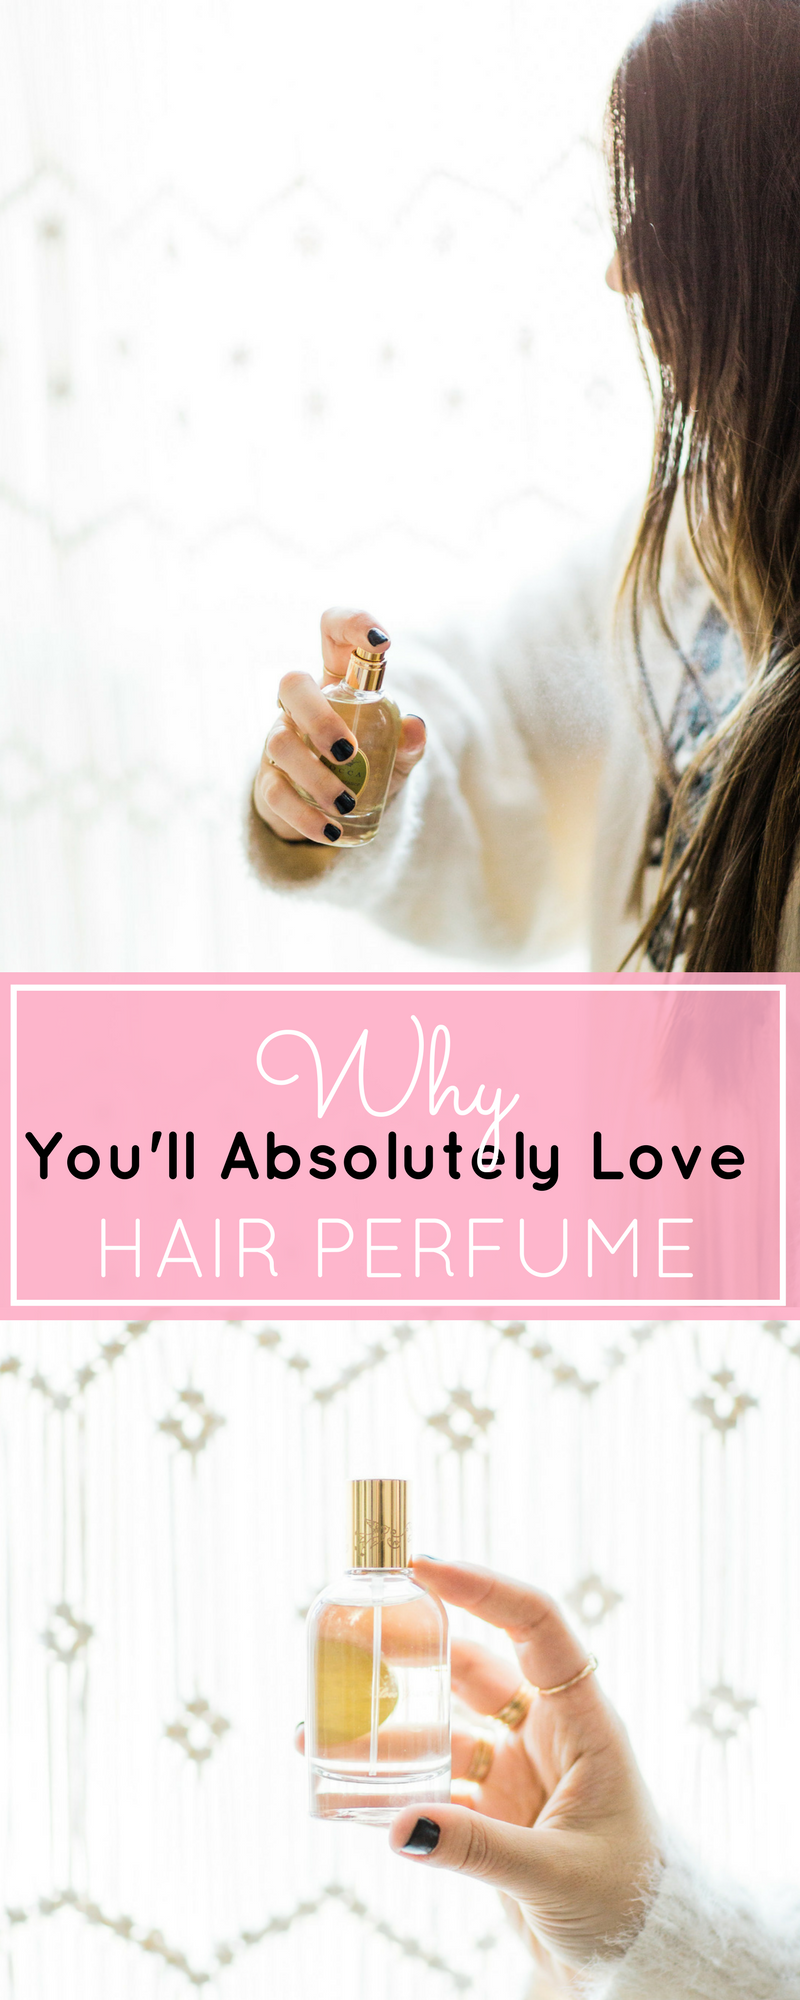 If you want to smell amazing all day long, try Tocca hair perfume. It's fragrant and feminine and gives you perfectly glossy locks. | glitterinc.com | @glitterinc - Why You'll Absolutely Love Hair Perfume by popular North Carolina style blogger Glitter, Inc.